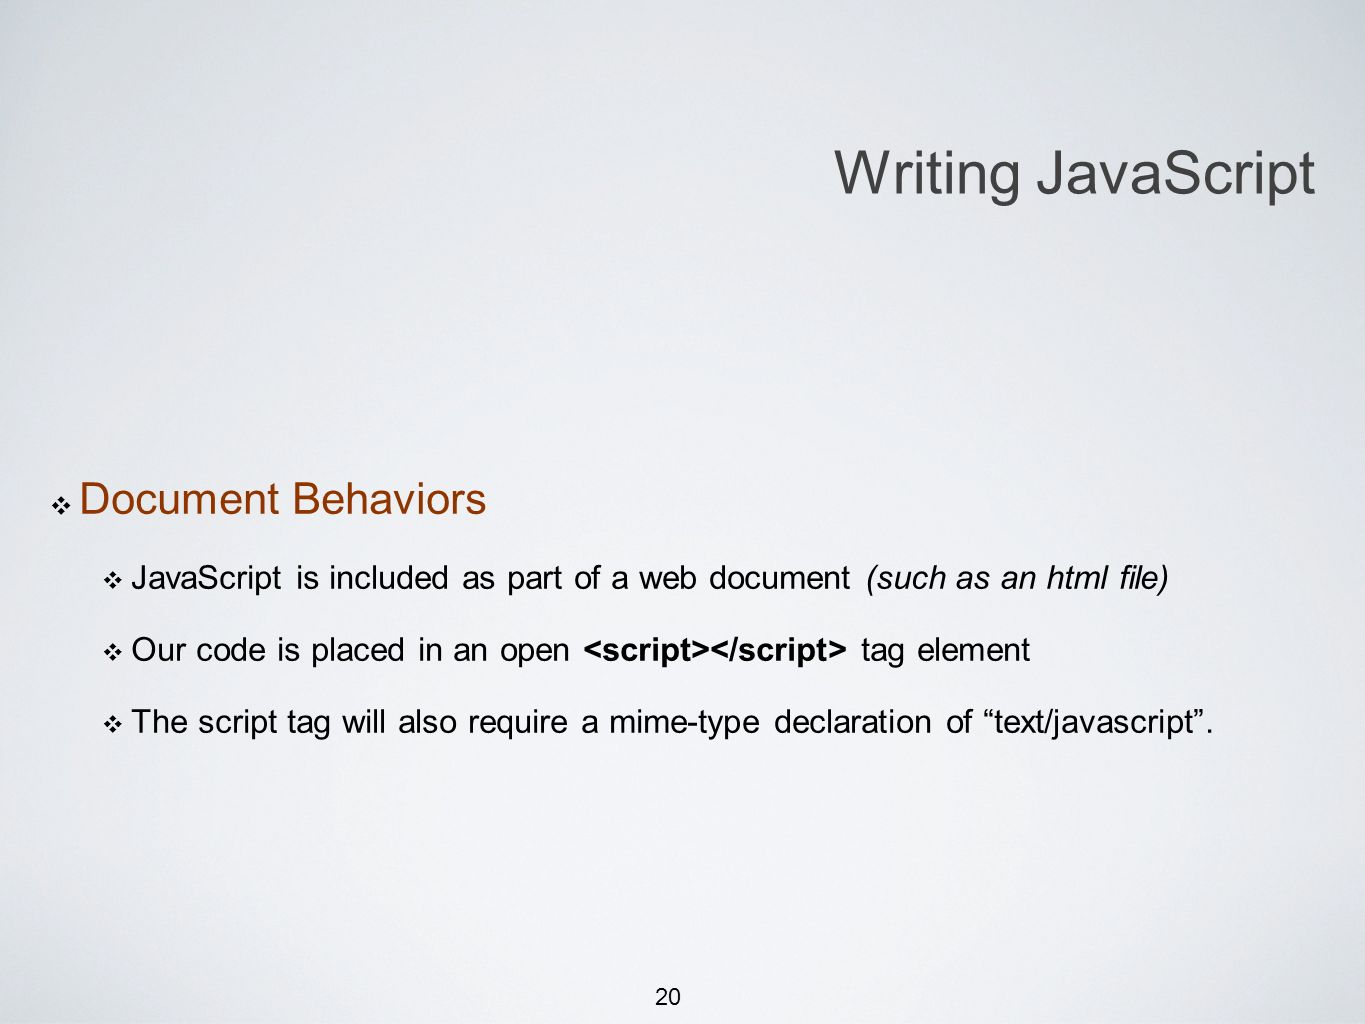 20 Document Behaviors JavaScript is included as part of a web document (such as an html file) Our code is placed in an open tag element The script tag will also require a mime-type declaration of text/javascript.